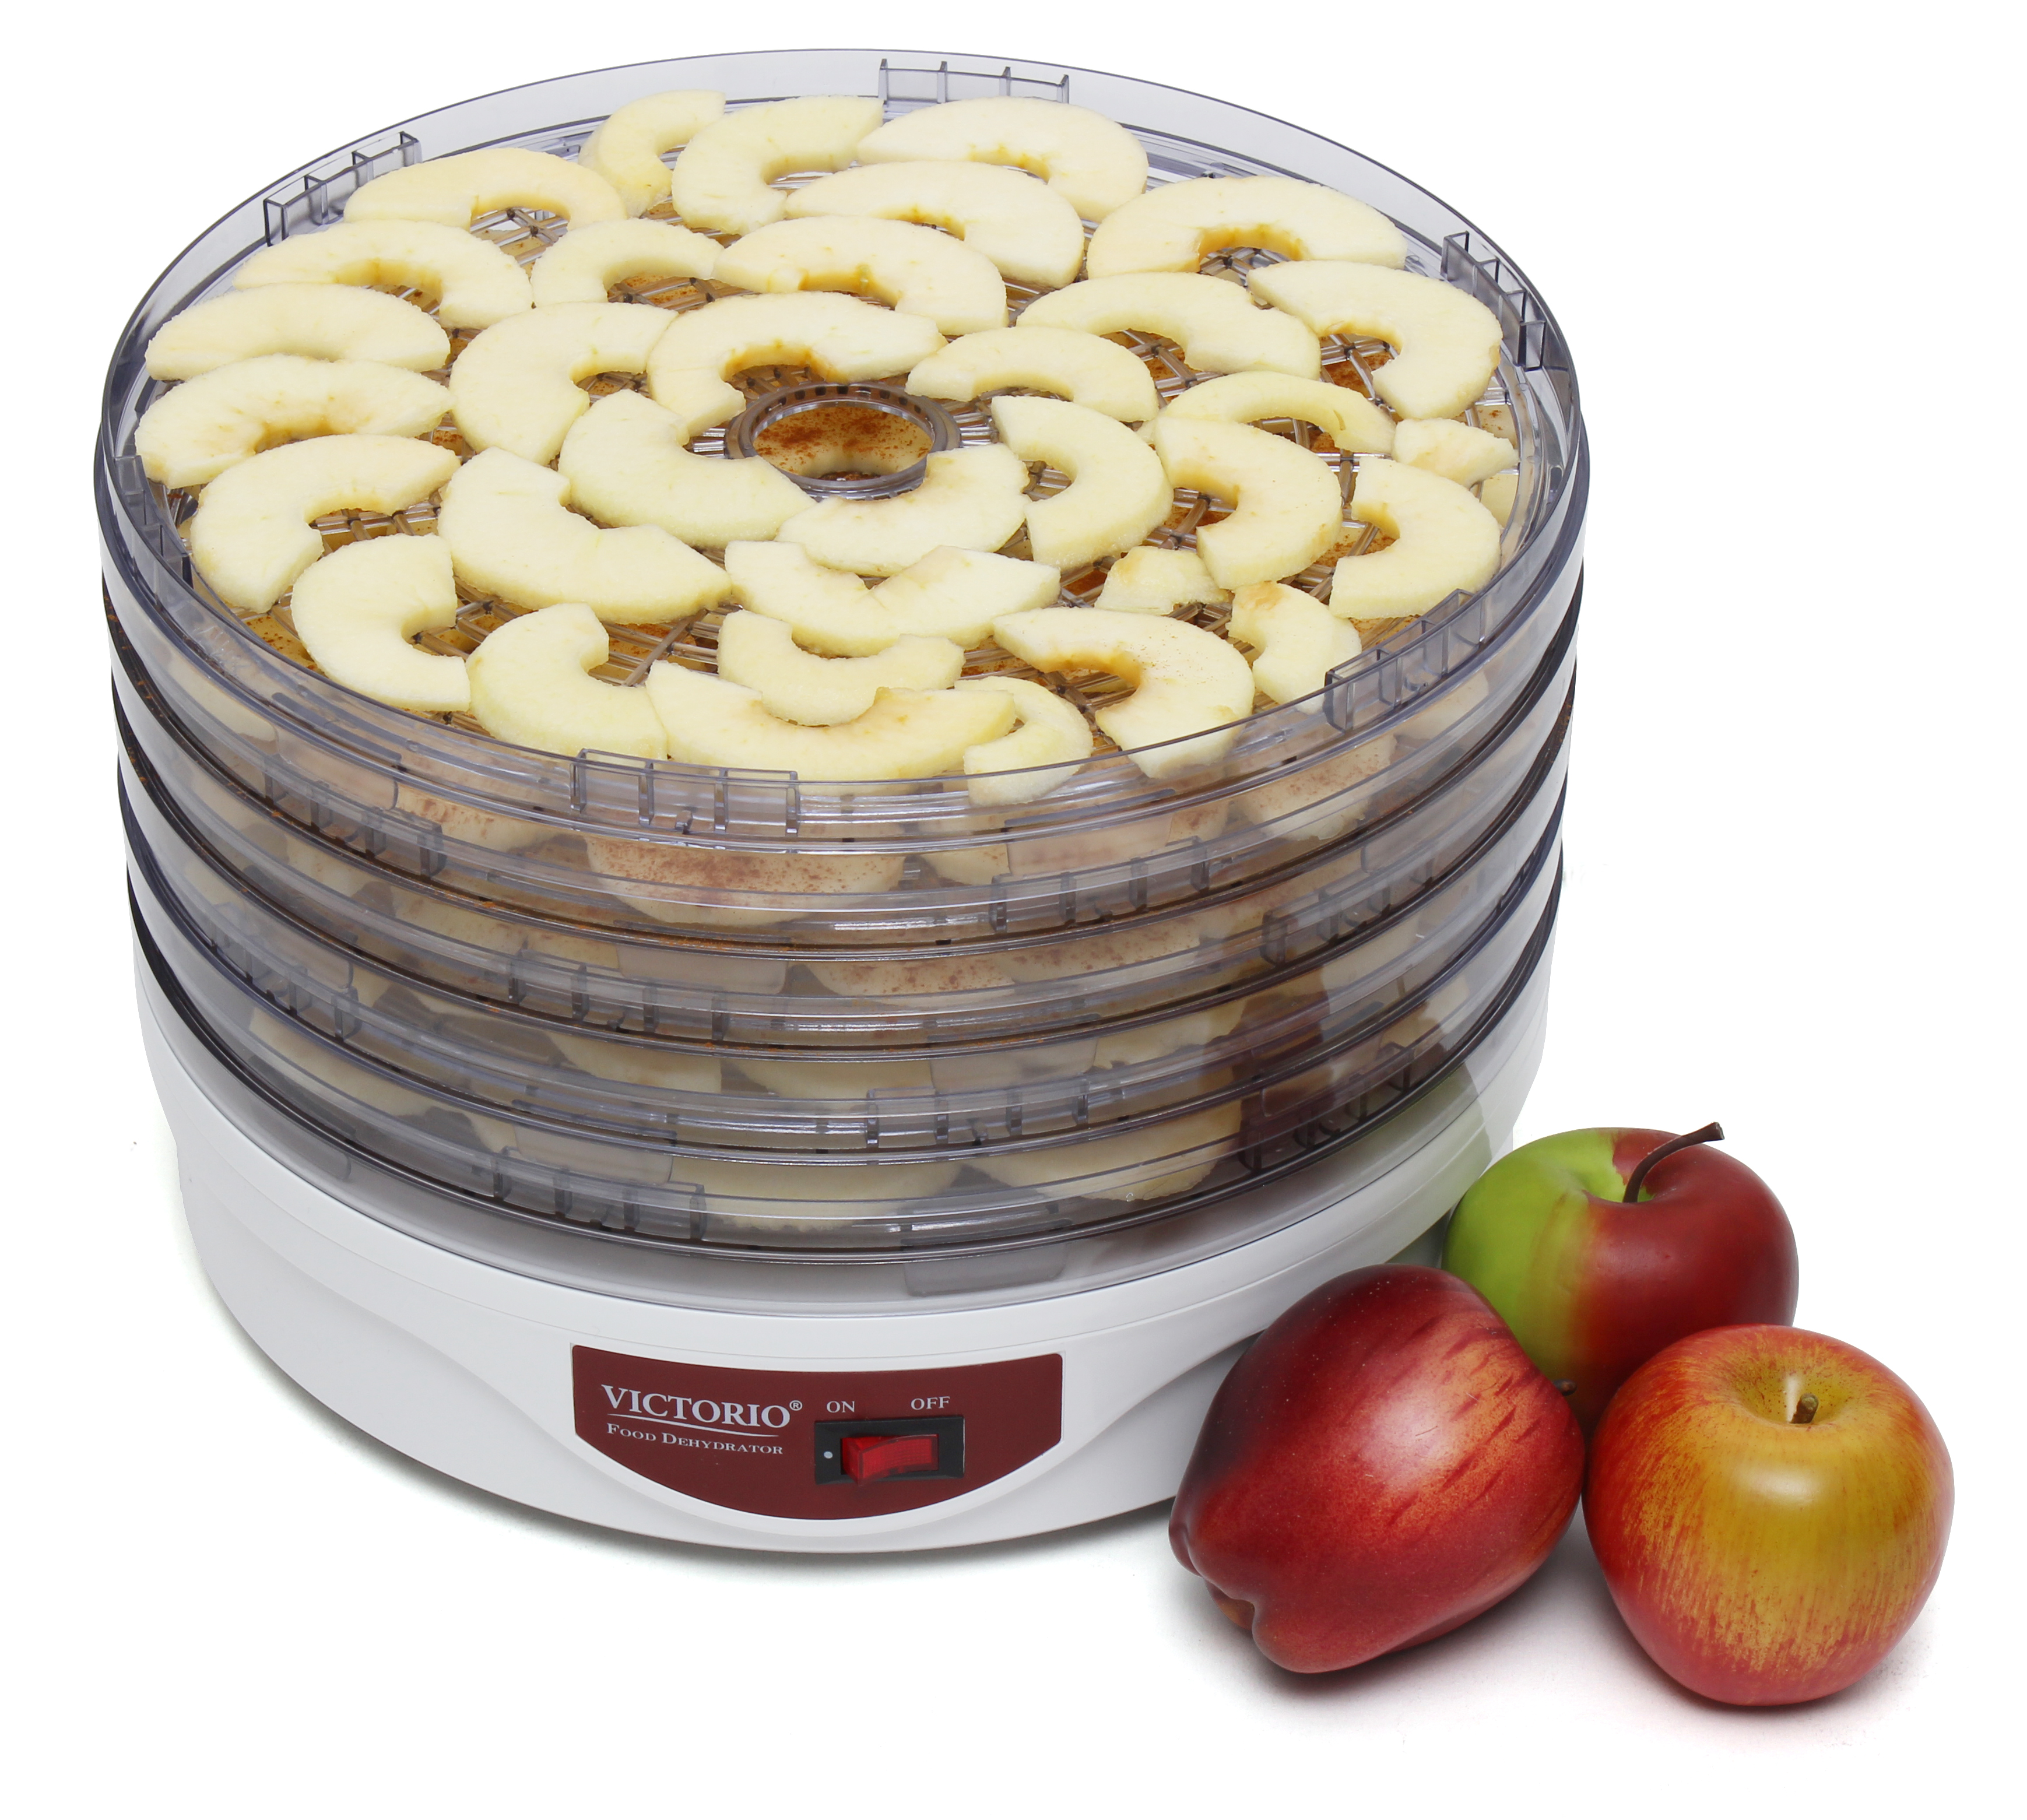 Victorio Electric Food Dehydrator - DISCONTINUED